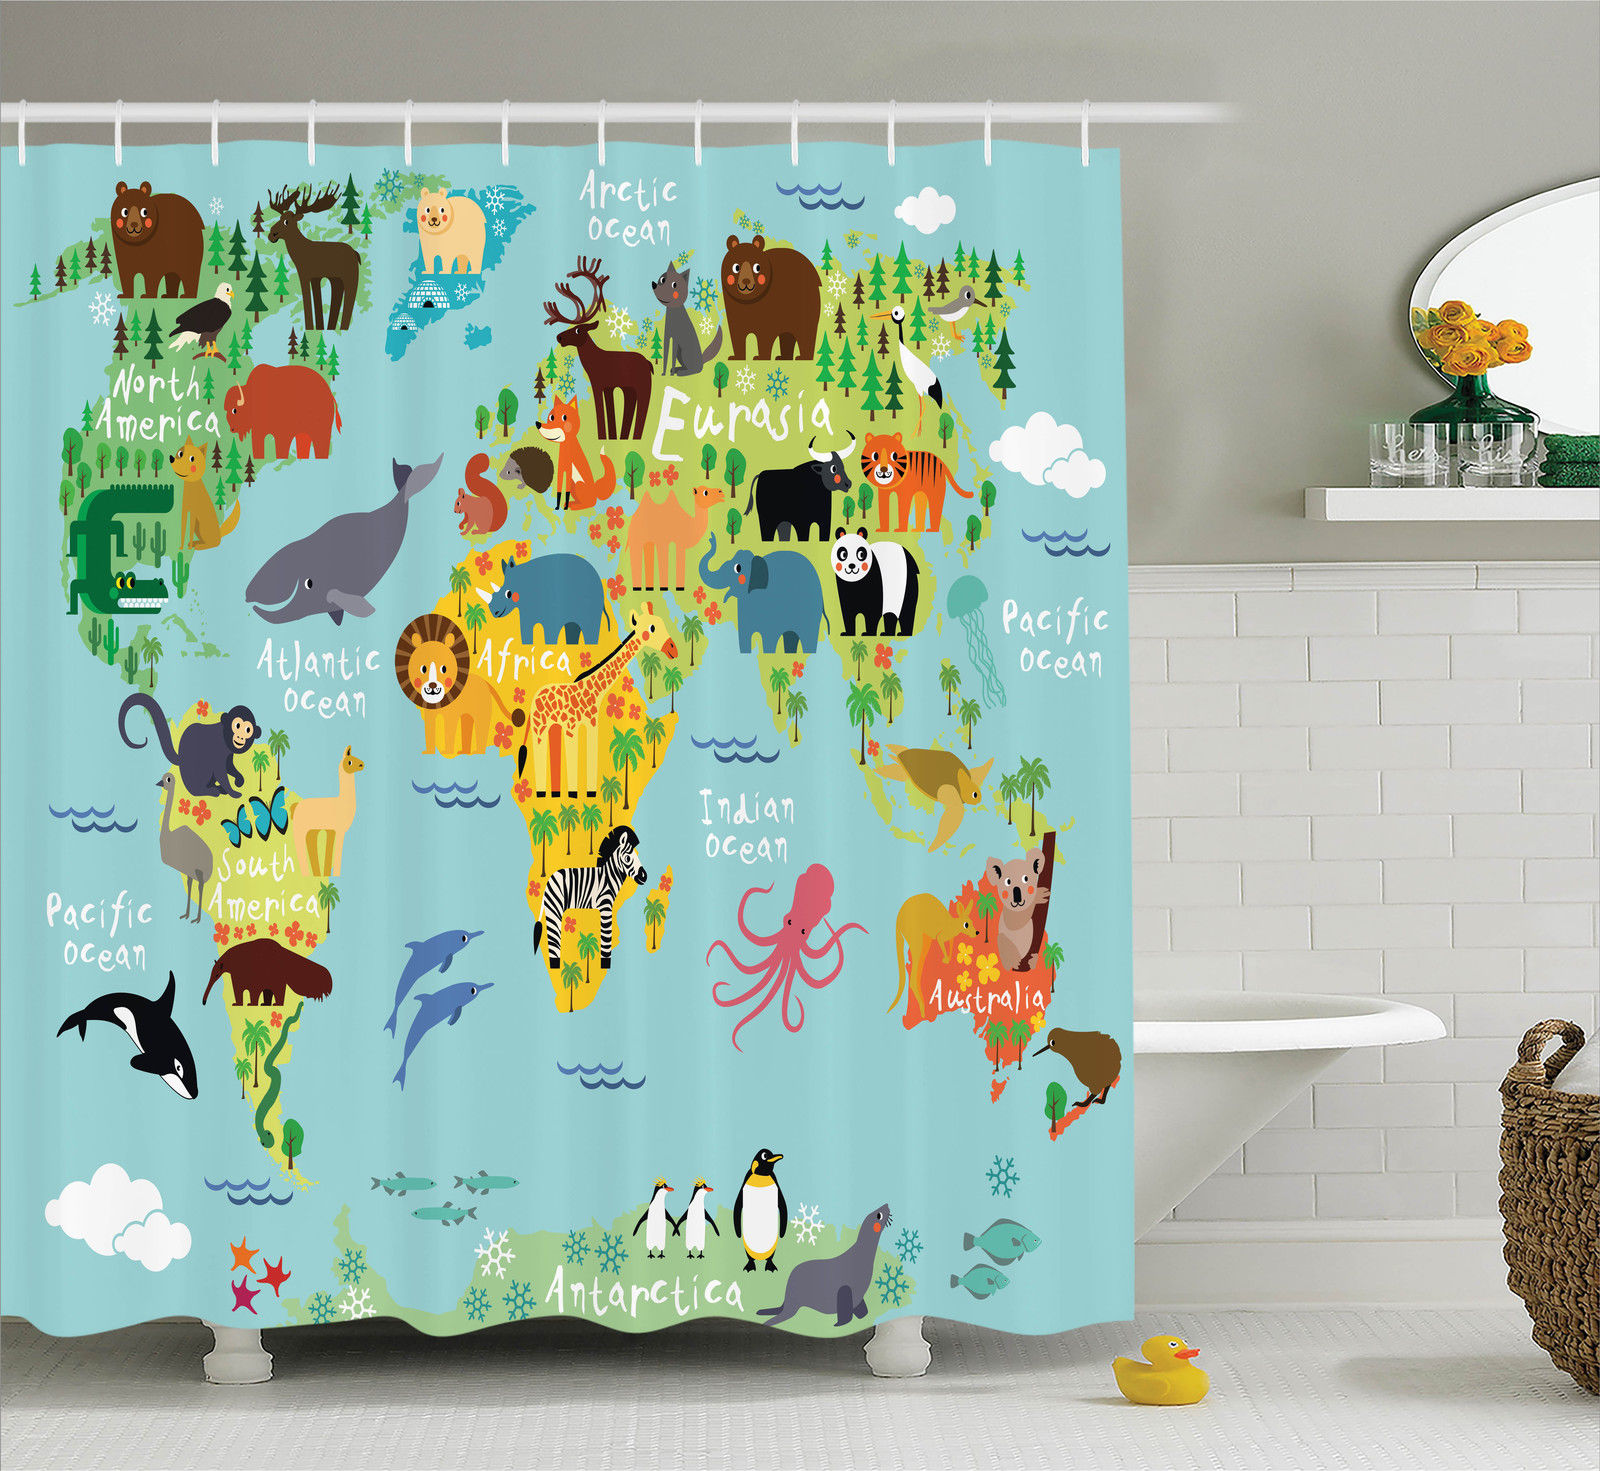 Bathroom Accessories For Children children's bathroom decor